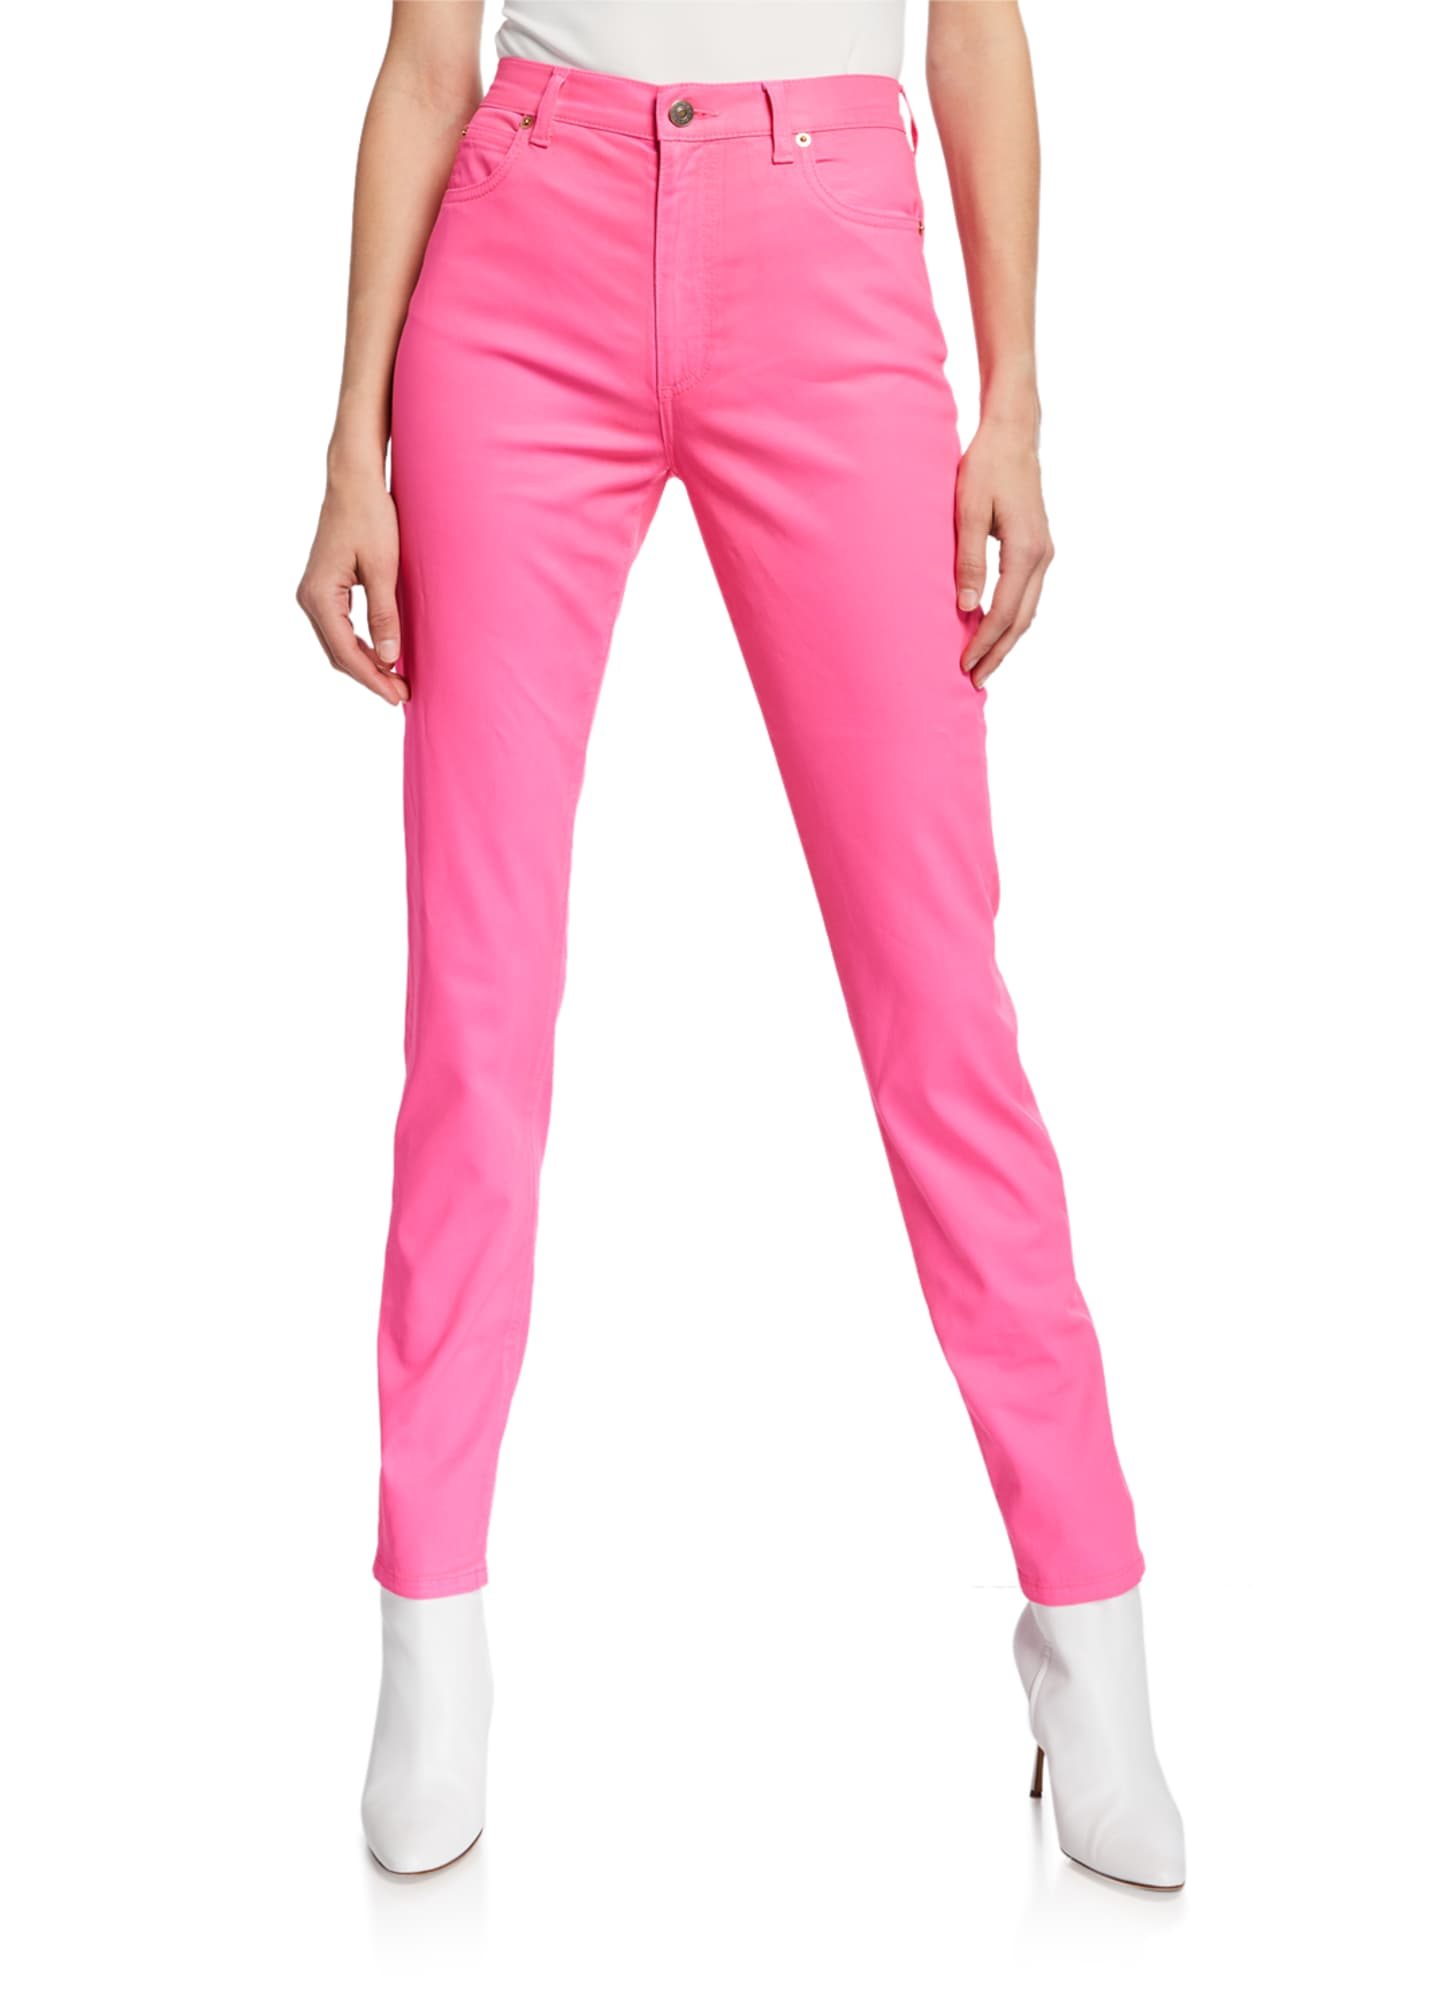 Gucci Dyed Denim Skinny Jeans, Bright Pink